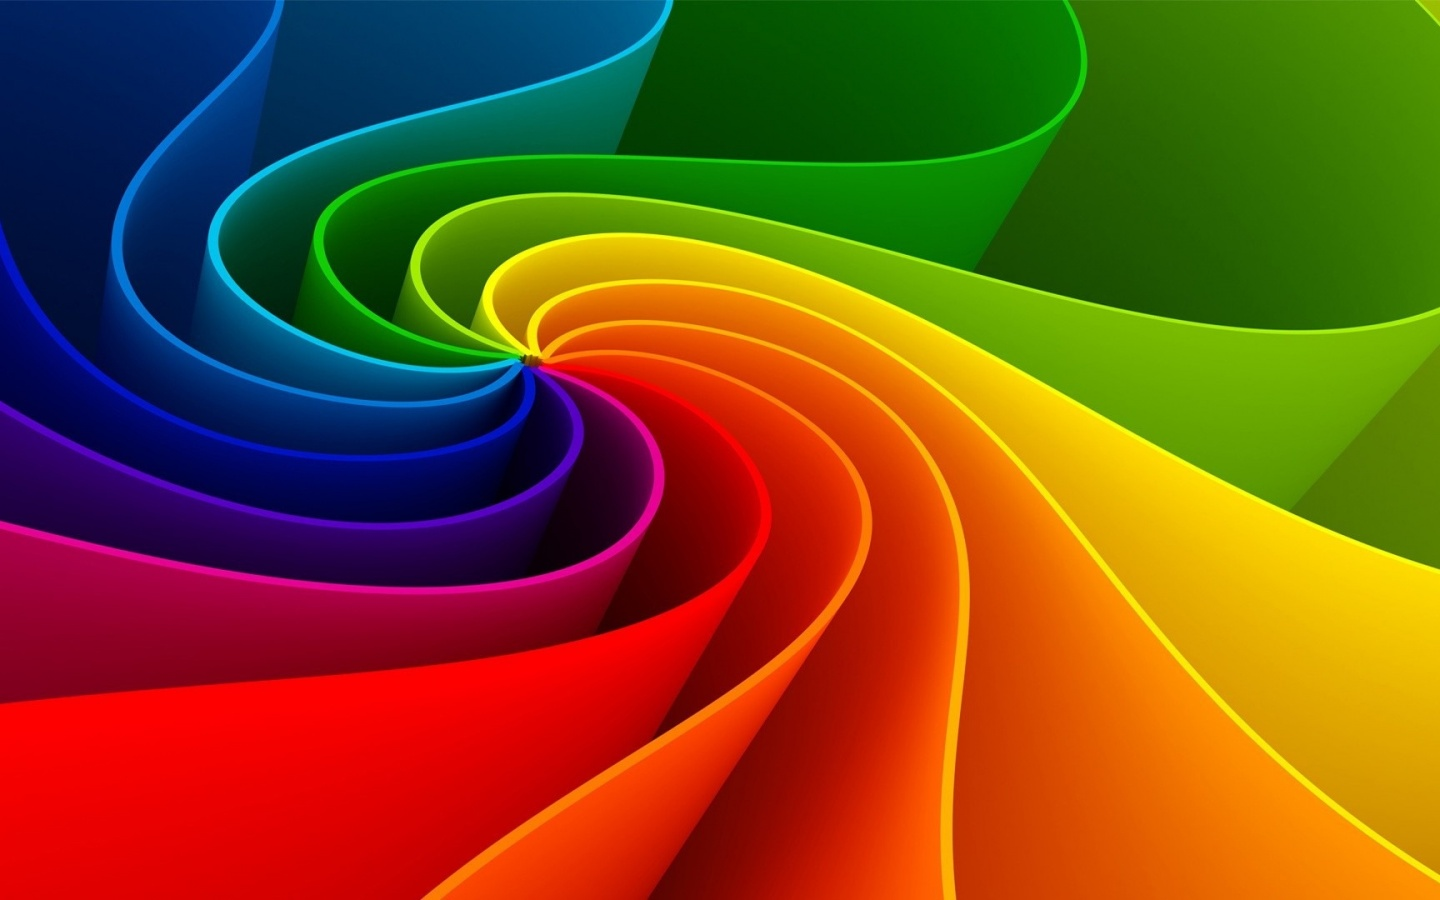 rainbow-abstract-desktop-background